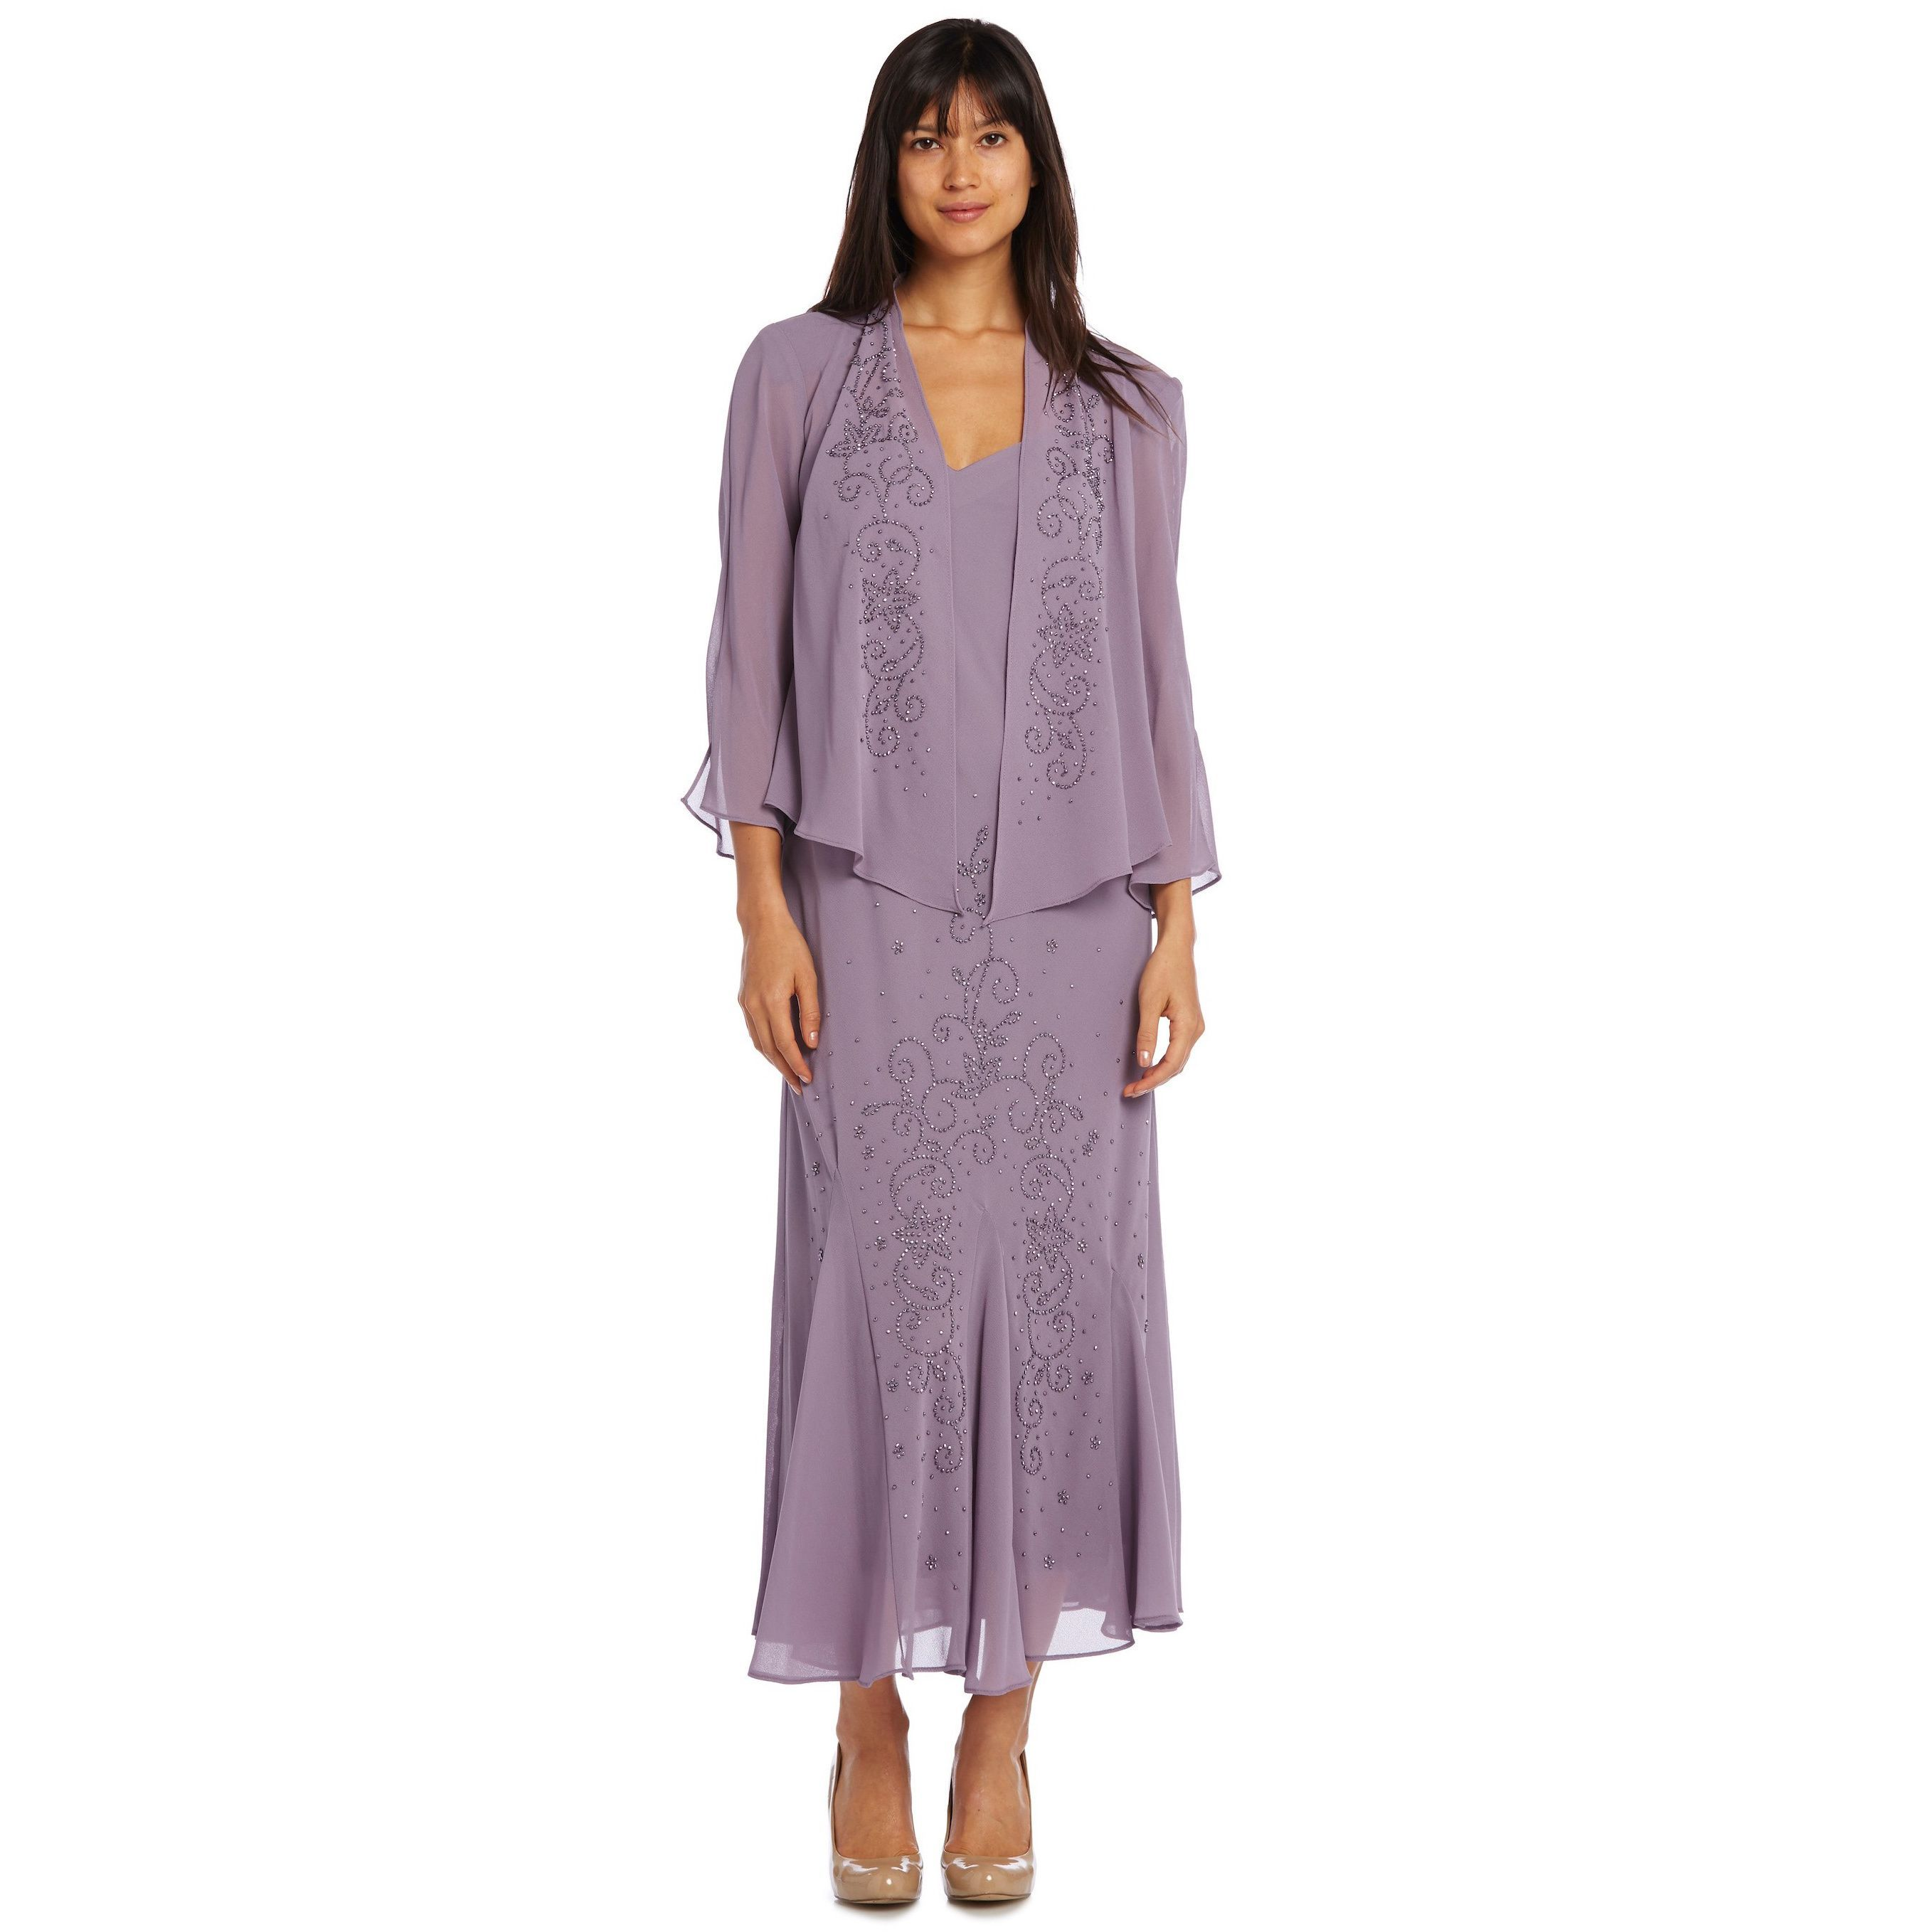 A three quarter sleeved jacket adorns a sleeveless dress in orchid